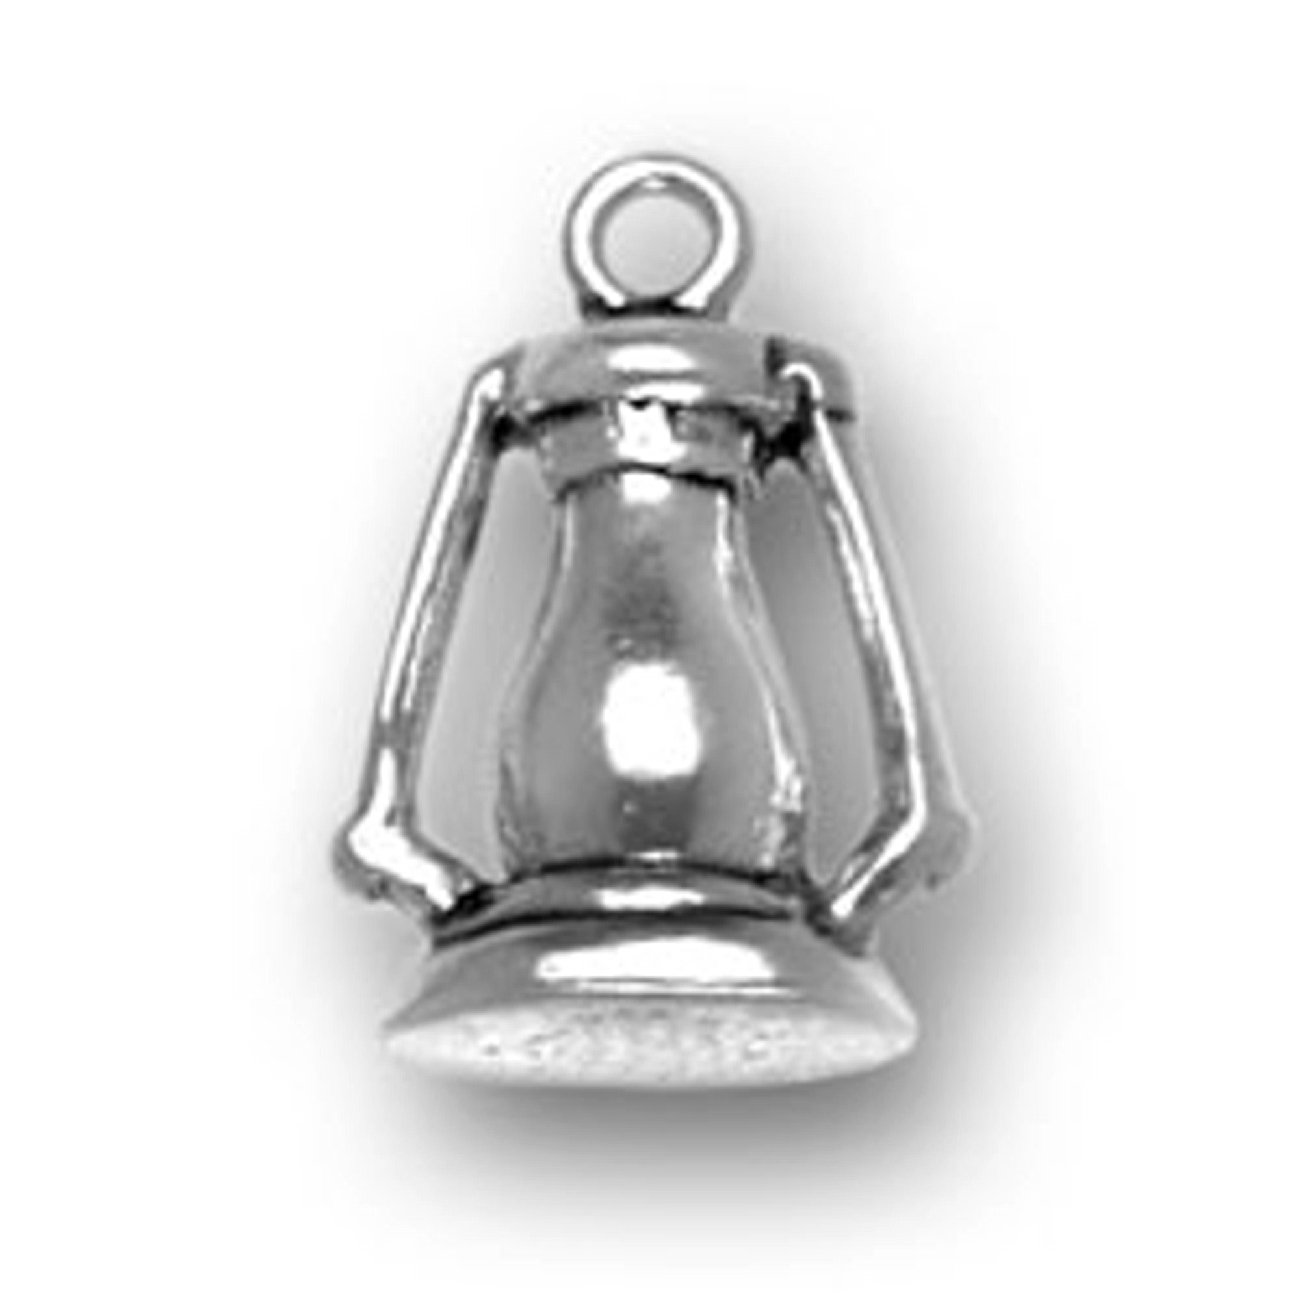 Sterling Silver 7 4.5mm Charm Bracelet With Attached 3D Emergency Or Camping Kerosene Lantern Charm